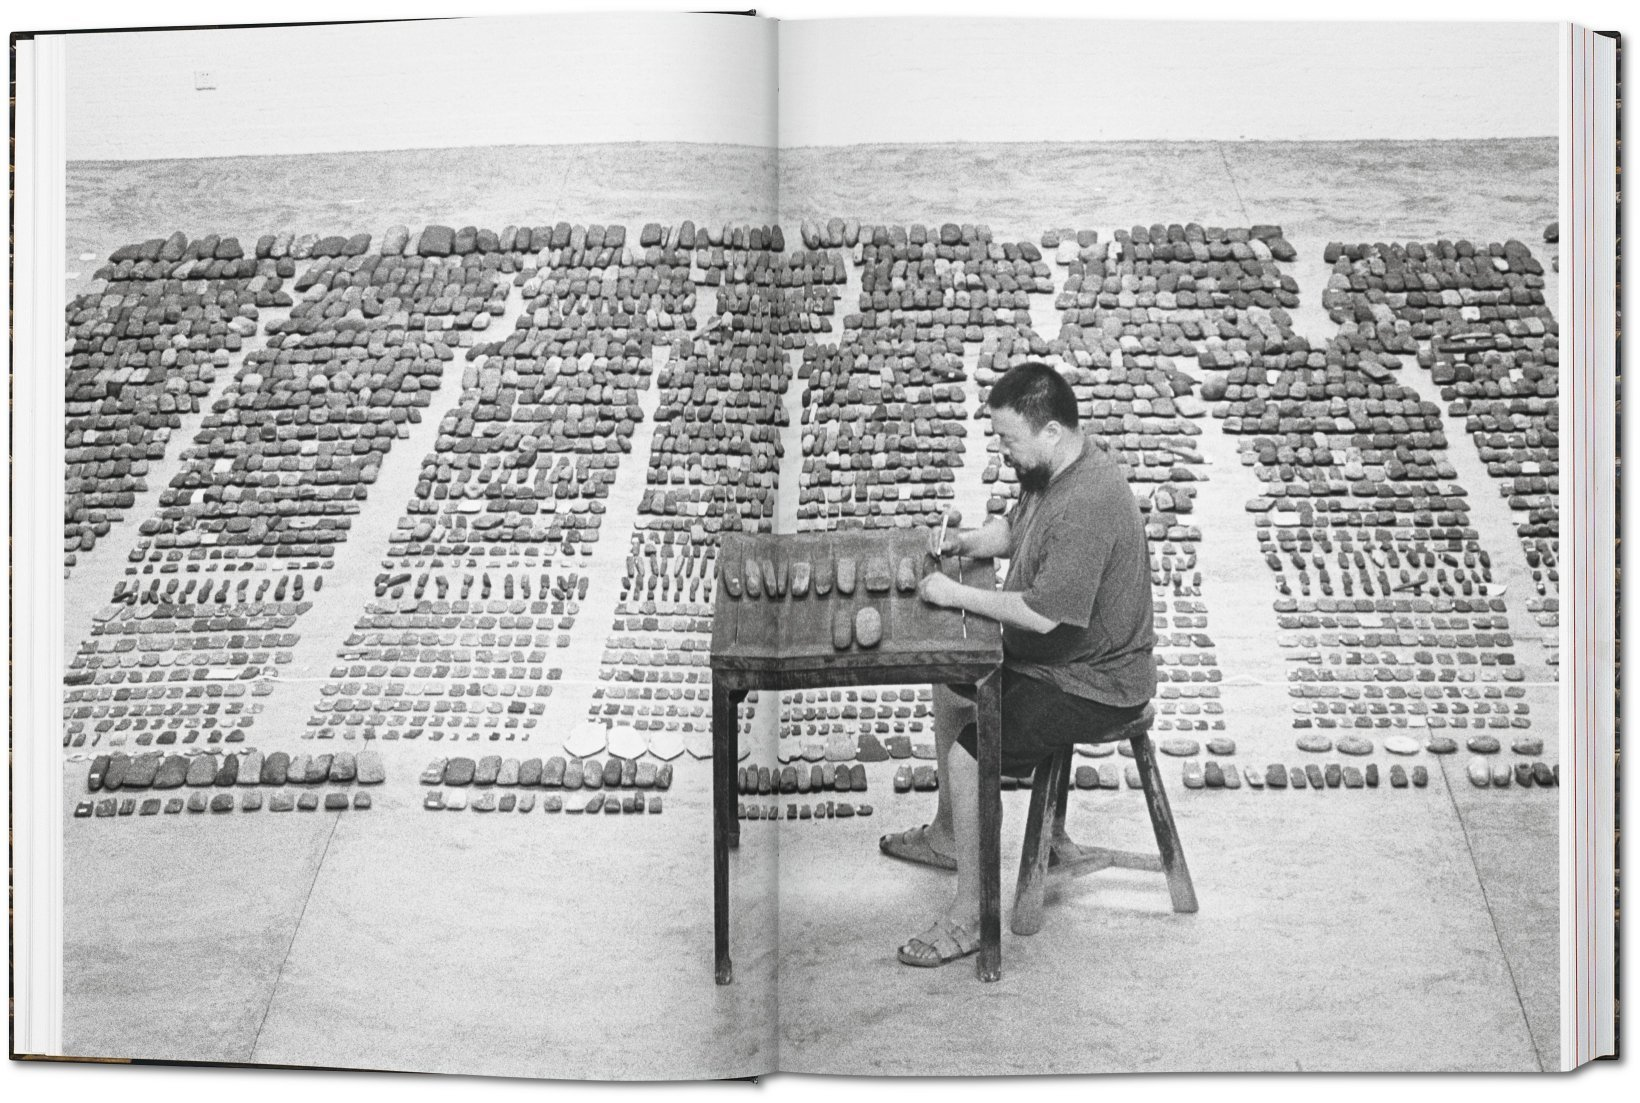 Amazon ai weiwei multilingual edition 9783836526494 uli amazon ai weiwei multilingual edition 9783836526494 uli sigg books floridaeventfo Image collections